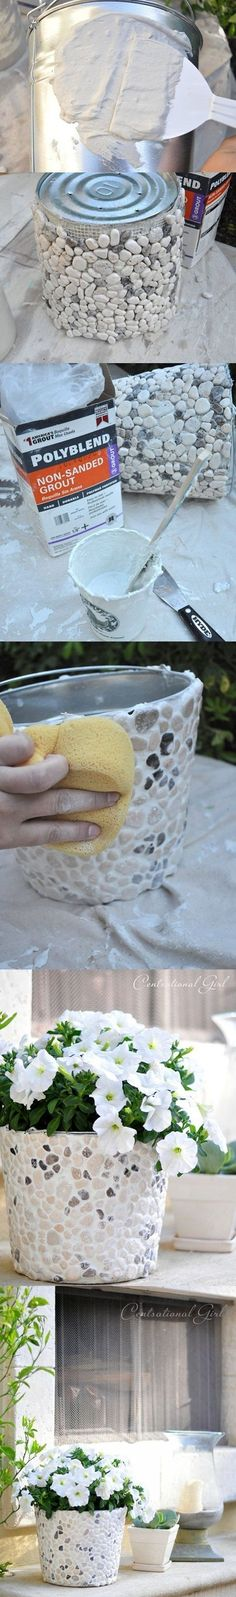 Pebble Flower Bucket DIY